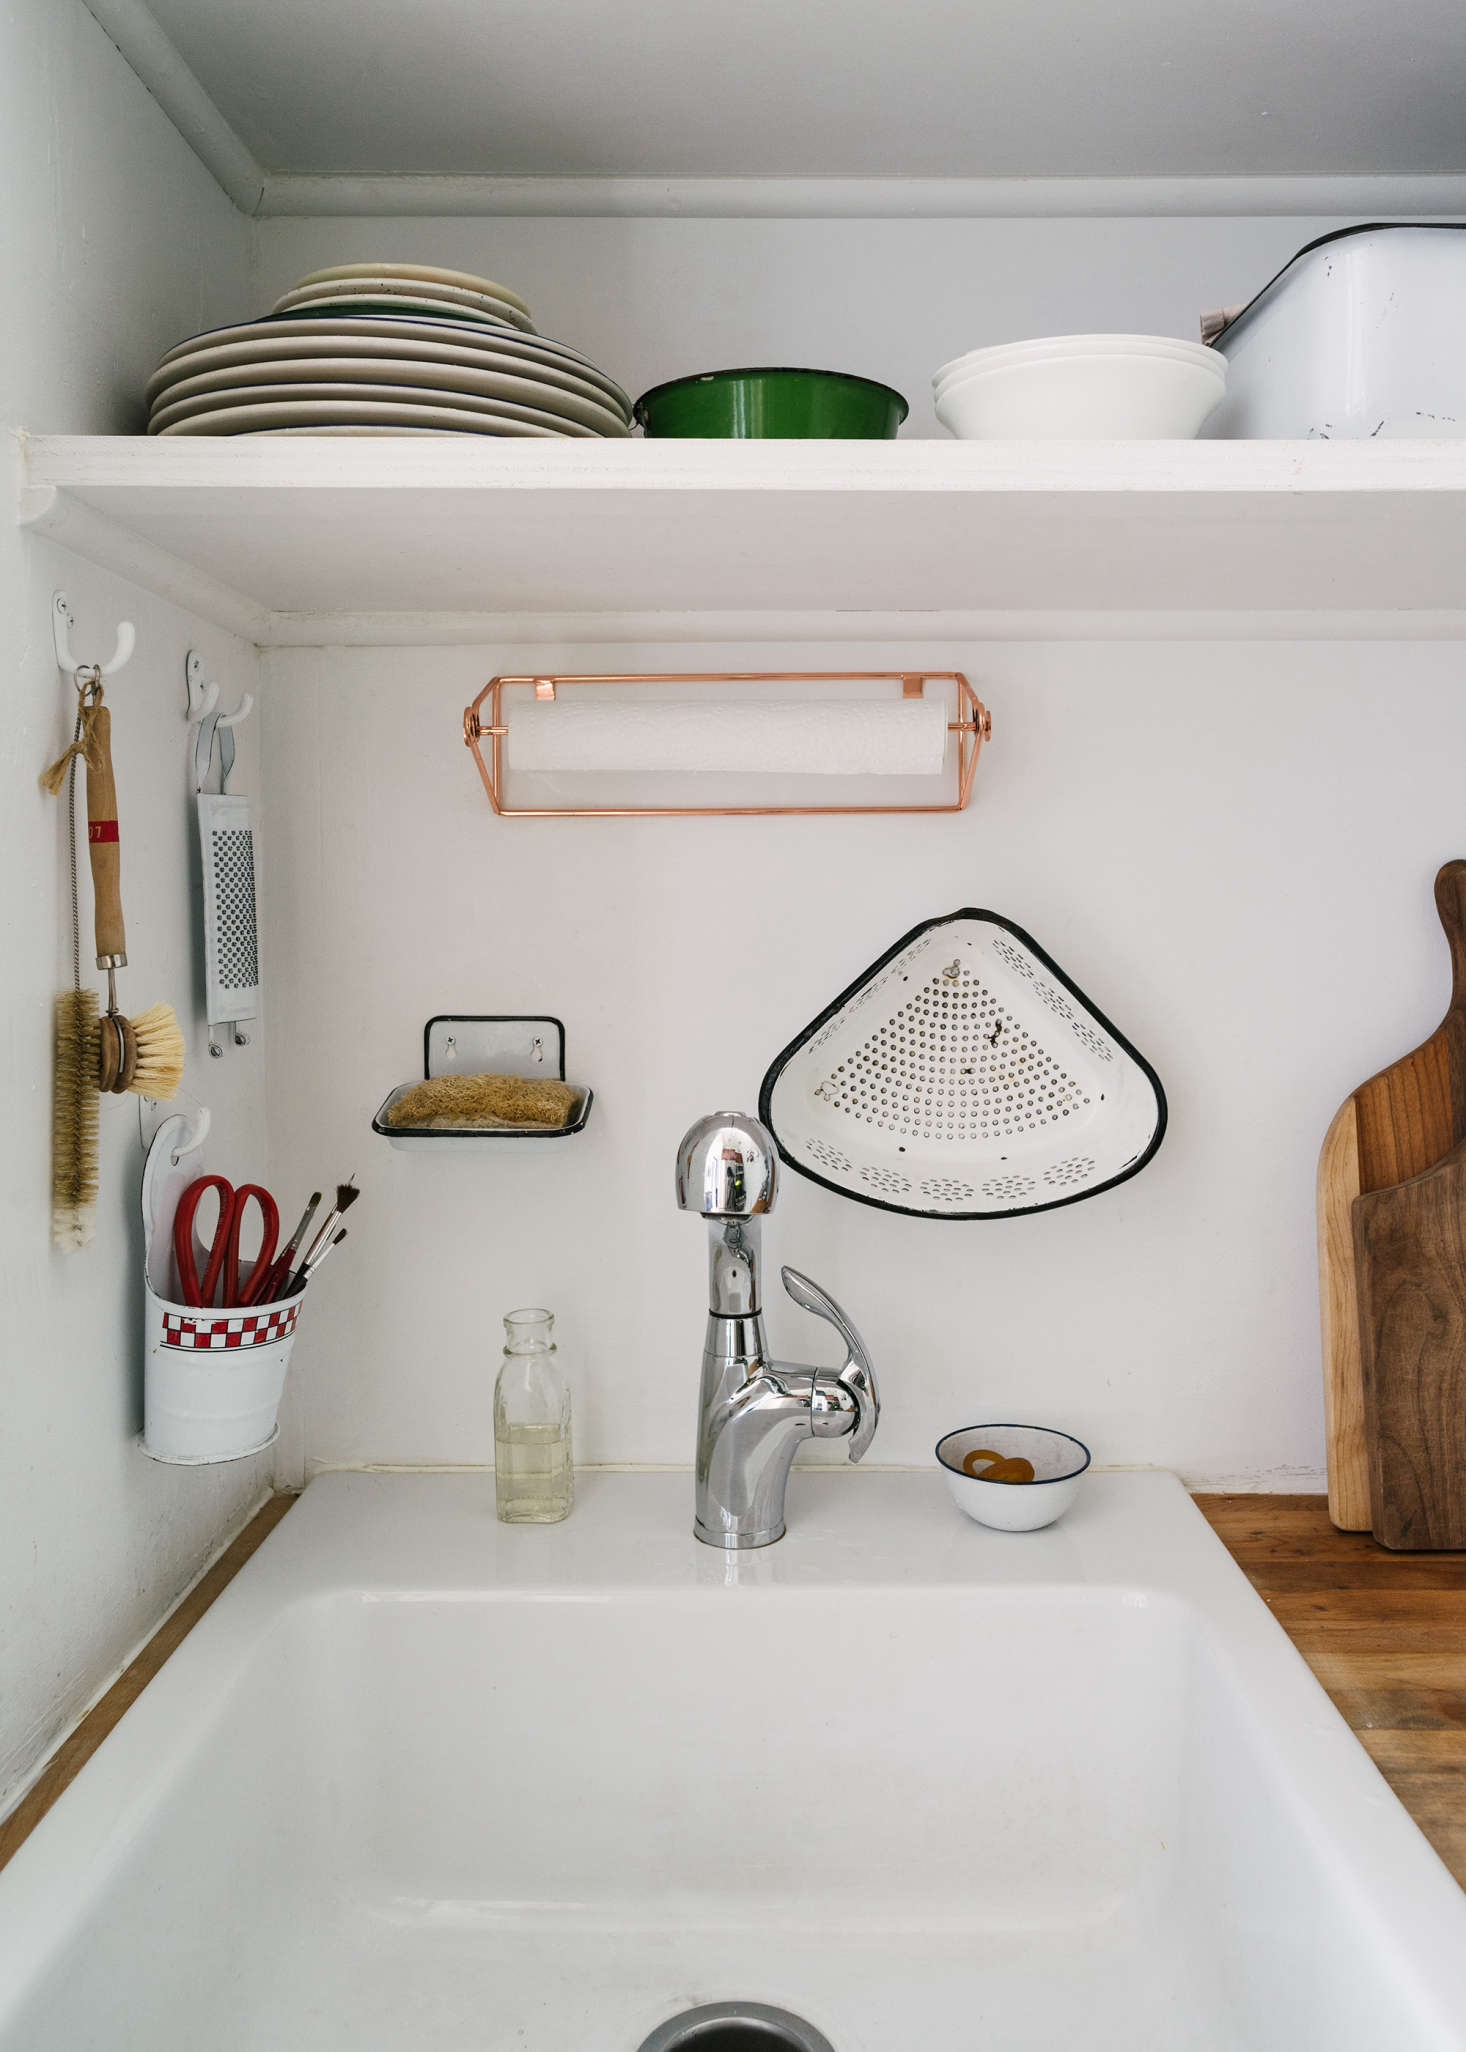 """I had no interest in enamelware until I met Carson,"" says Sandeep. ""He grew up with so much of it in the South, and I realized it was a big part of my own visual vocabulary from England. So now we're both obsessed."" Surrounding the sink is a collection of enamelware—a grater, a wall bucket, soap dish, and strainer—from various flea markets. Paper towels are kept in a Copper Wire Mountable Towel Holder from West Elm and the sink—""a triumph; so affordable and the look and size is perfect""—is the Domsjö from Ikea."